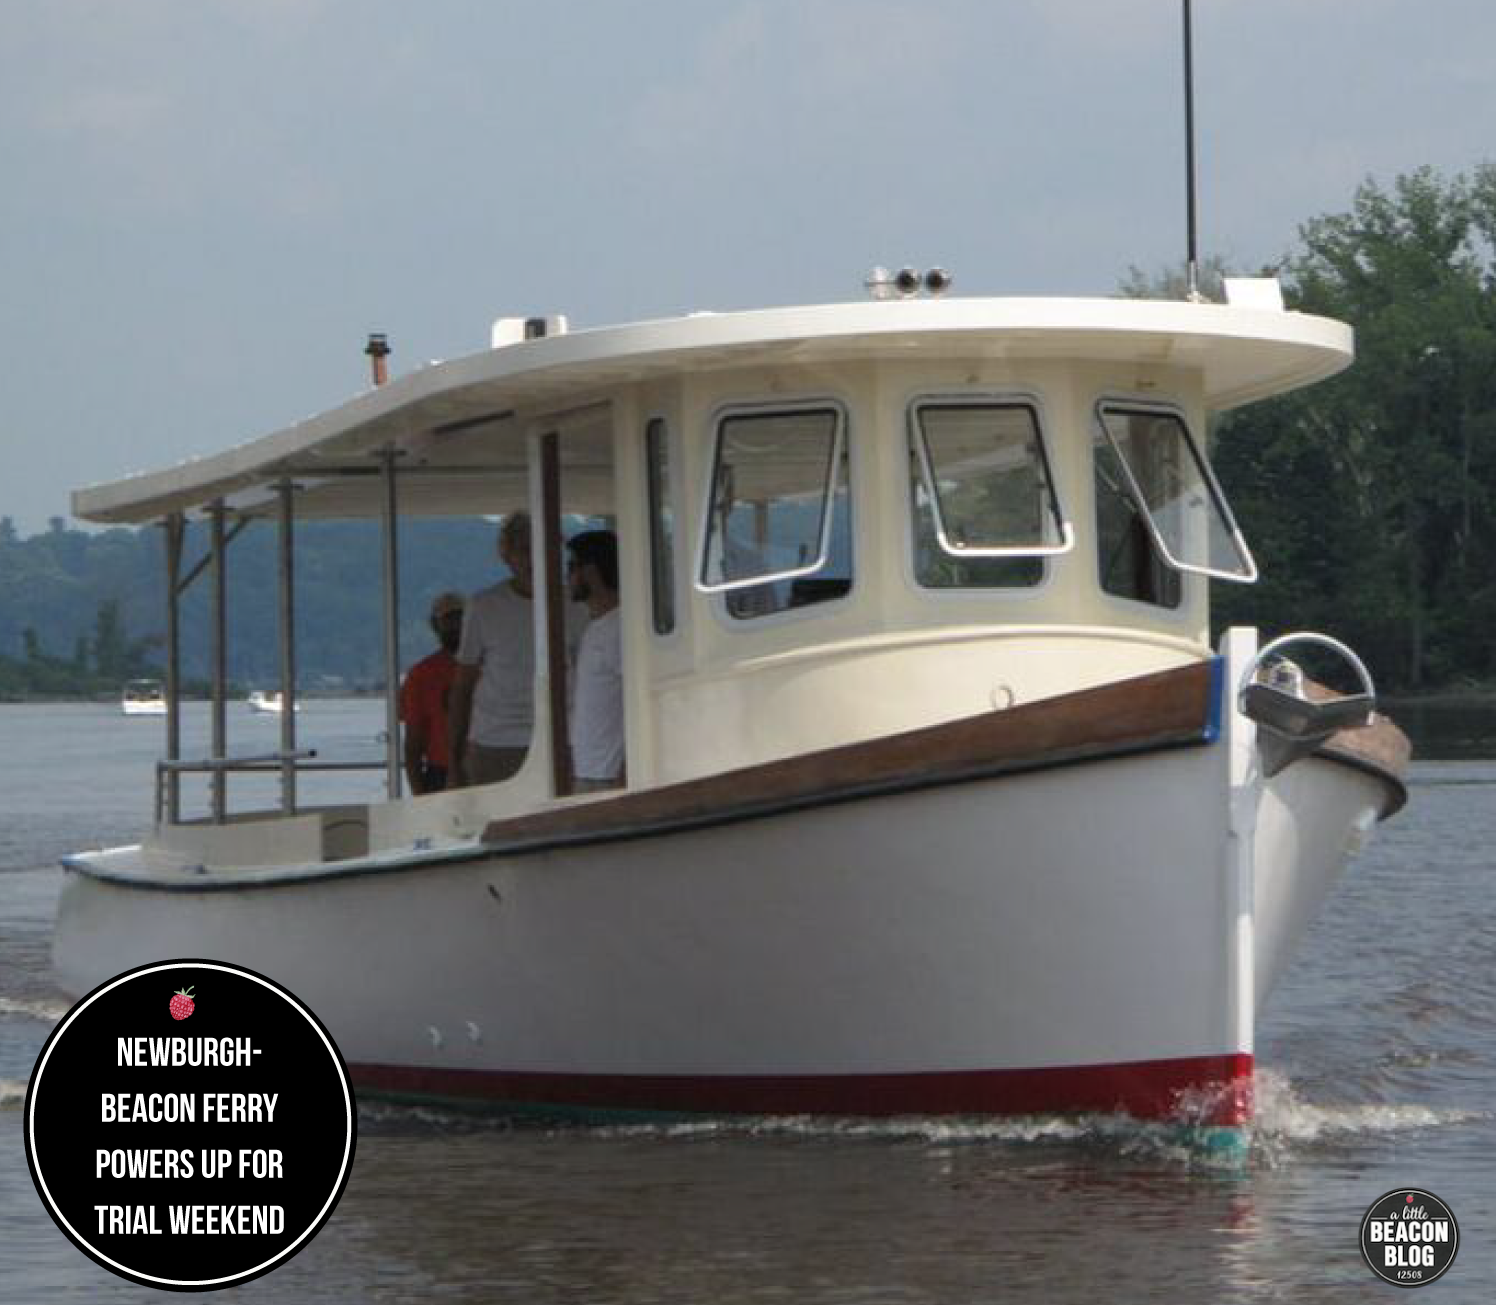 """We know what you're thinking: """"That doesn't look like the newburgh-beacon ferry!"""" You're right, it doesn't. This is the Solaris, a smaller vessel from the hudson river maritime museum that carries 28 passengers and will be used for trial newburgh-beacon weekend service."""